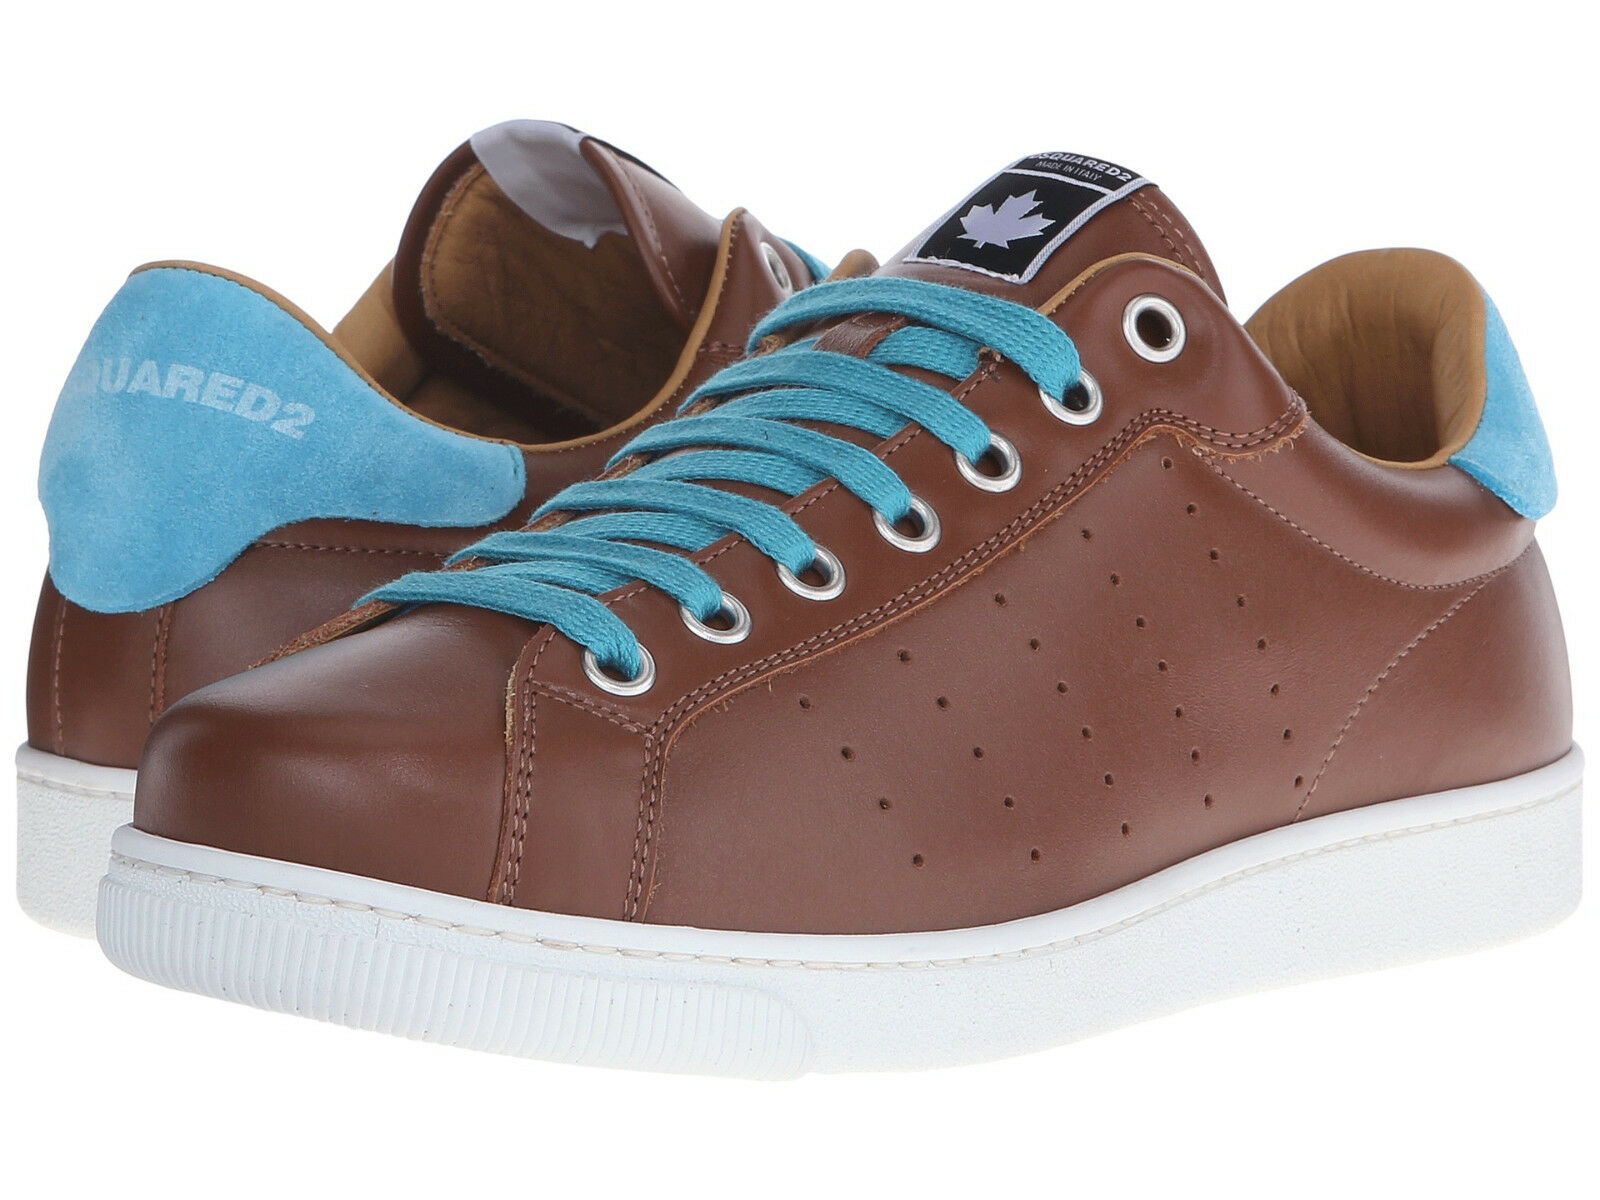 NEW DSQUARED2 Brown Leather and bluee Suede Low-Top Sneakers Size 10